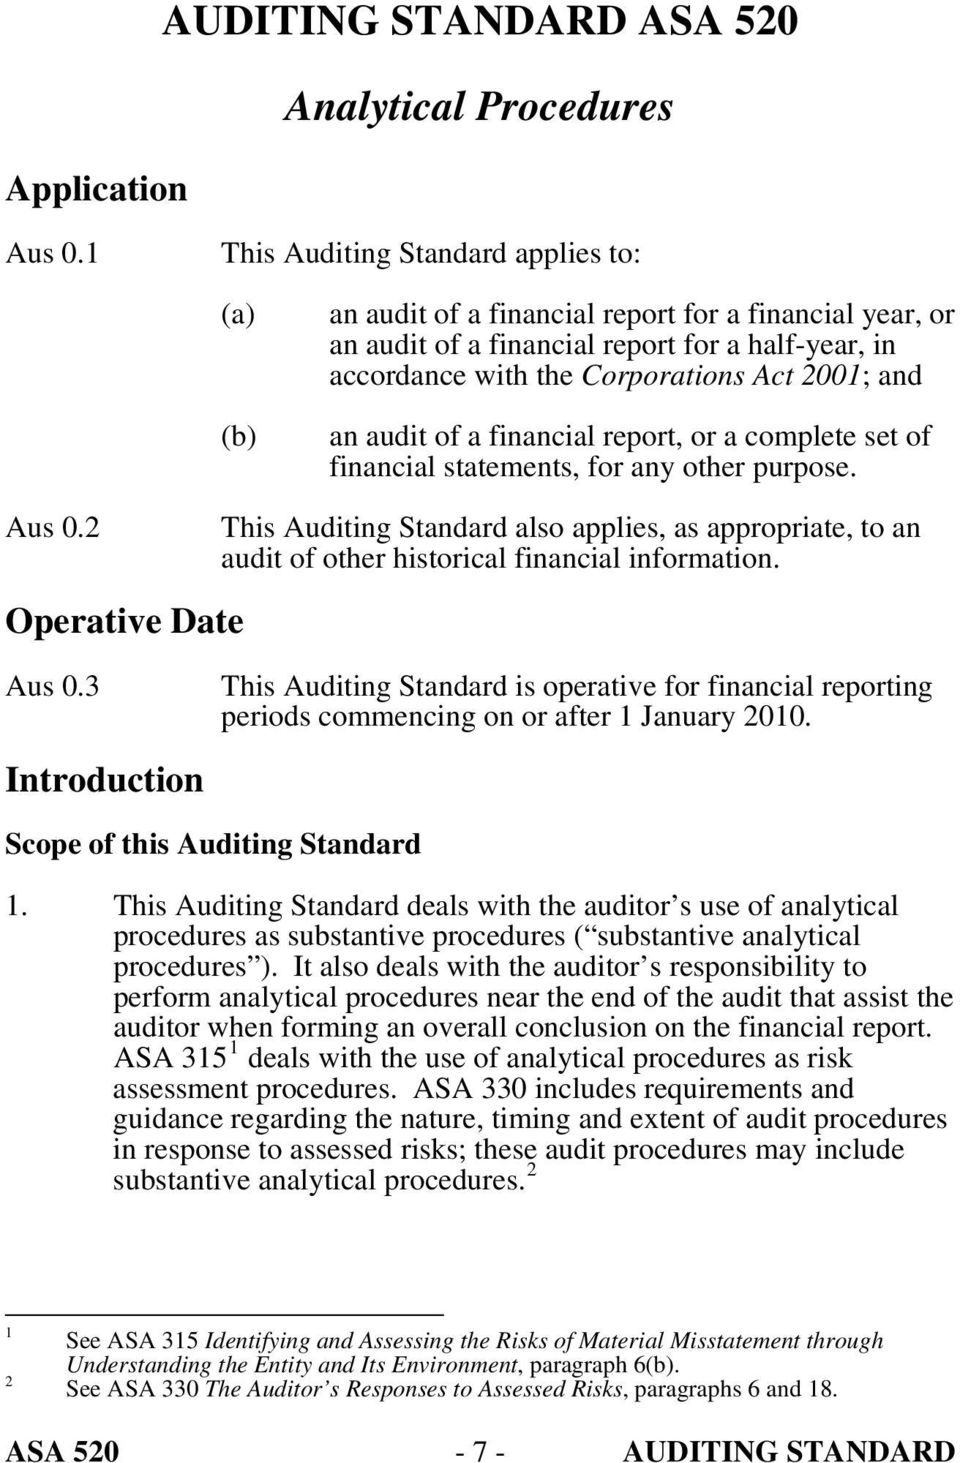 an audit of a financial report, or a complete set of financial statements, for any other purpose. Aus 0.2 Operative Date Aus 0.